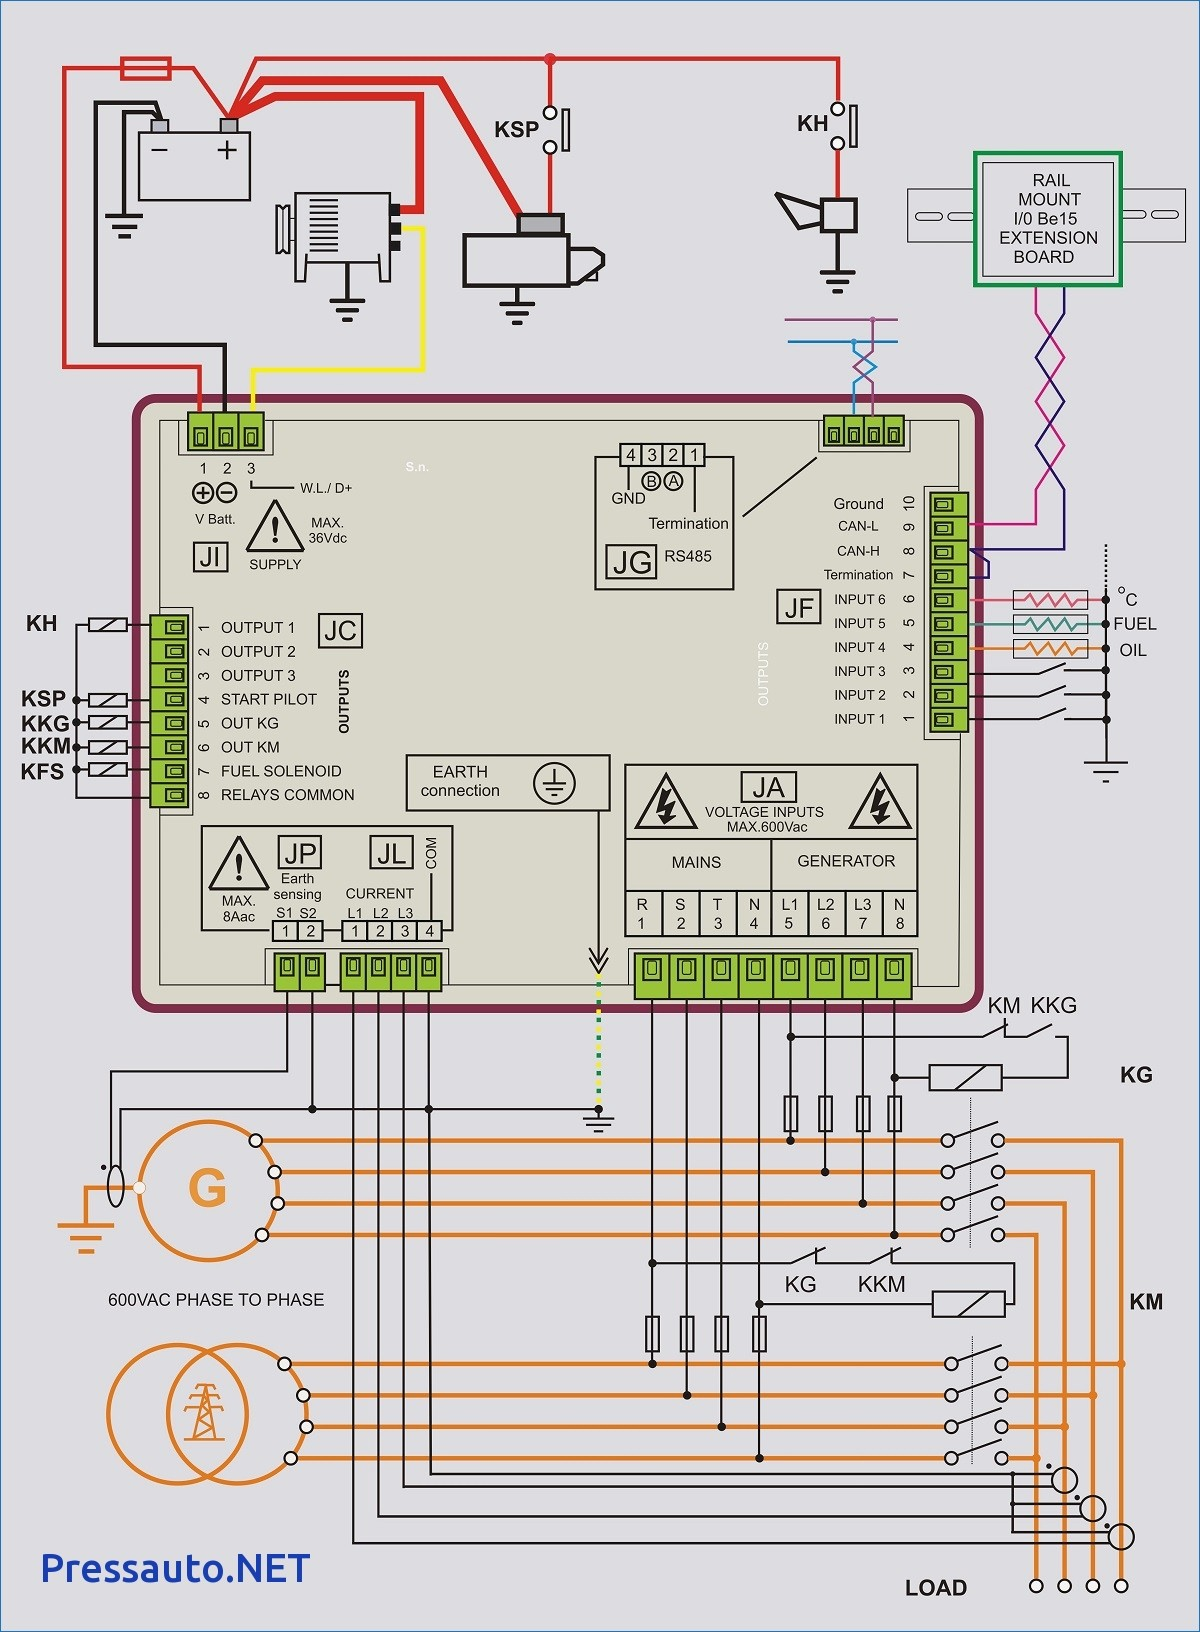 Generac Transfer Switch Wiring Diagram Generac Transfer Switch Wiring Diagram Gif Throughout Generator Of Generac Transfer Switch Wiring Diagram